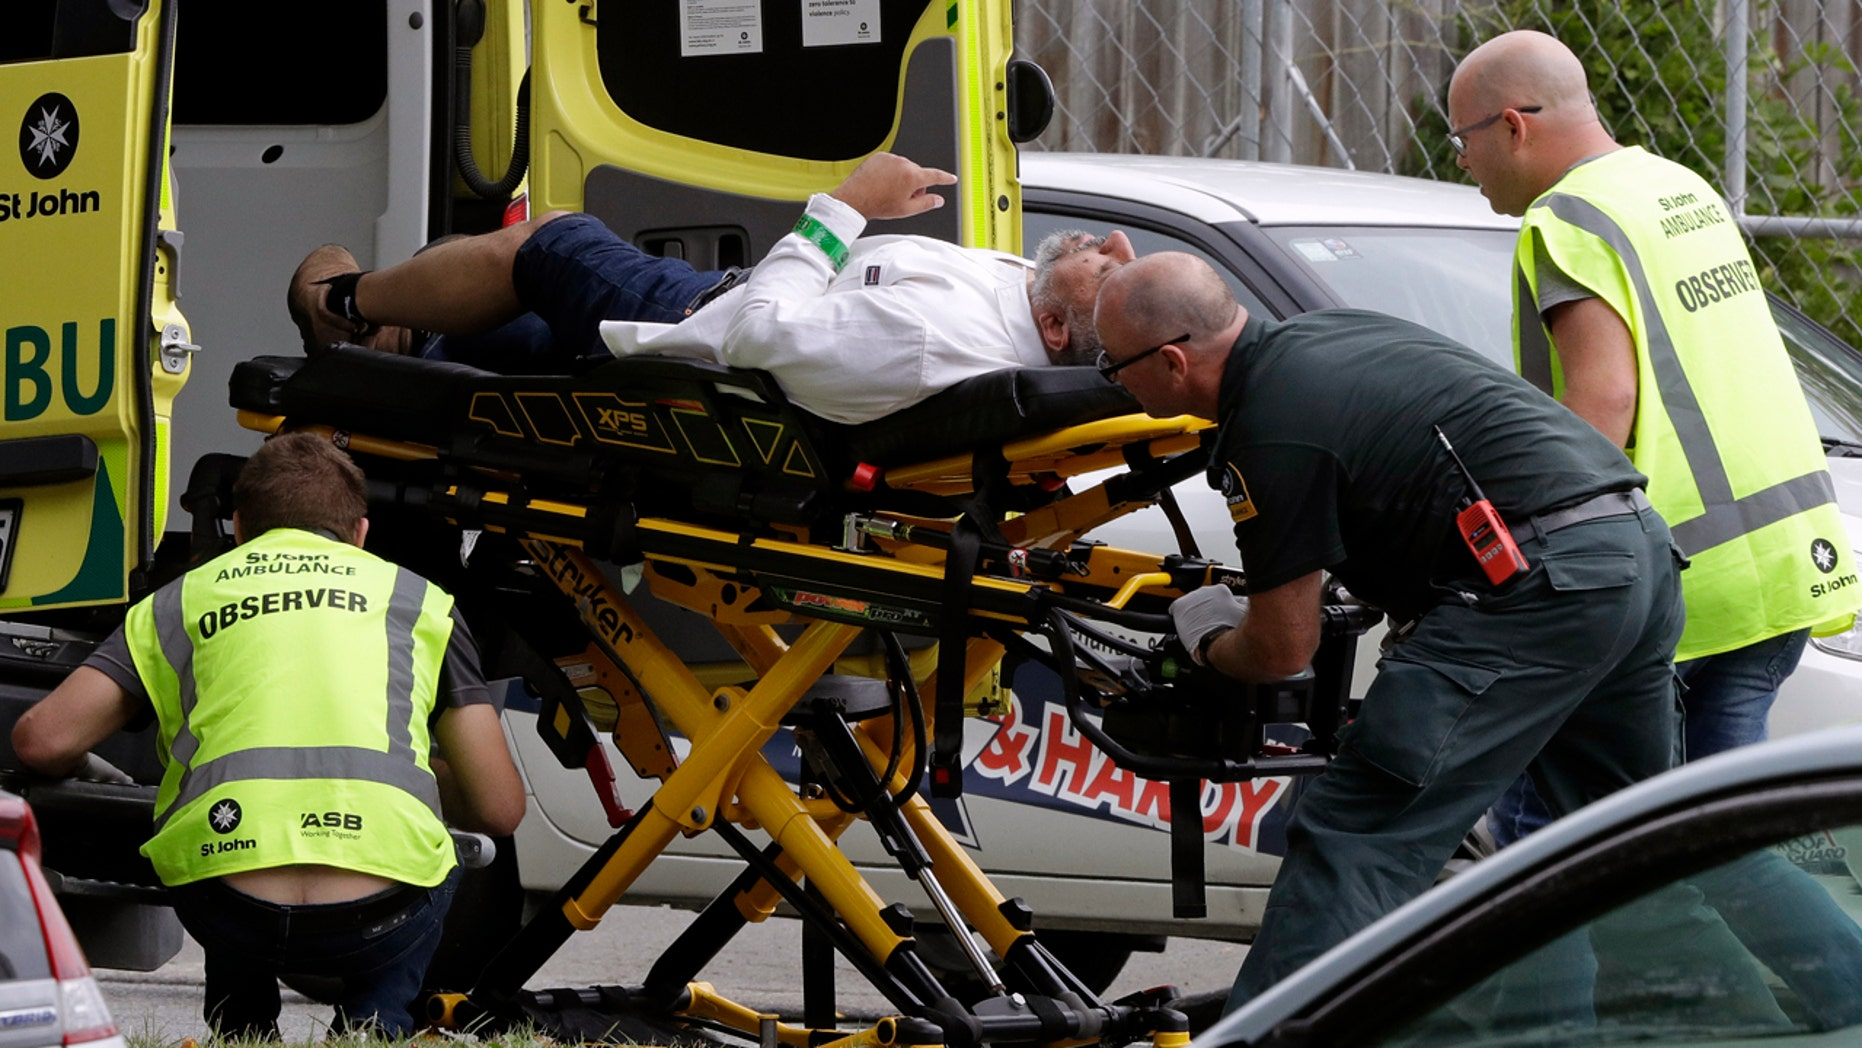 Ambulance staff takes a man outside a mosque in downtown Christchurch, New Zealand, Friday, March 15, 2019. A witness says many people have been killed in a mass photography at a mosque in New Zealand, Christchurch. (Associated Press)